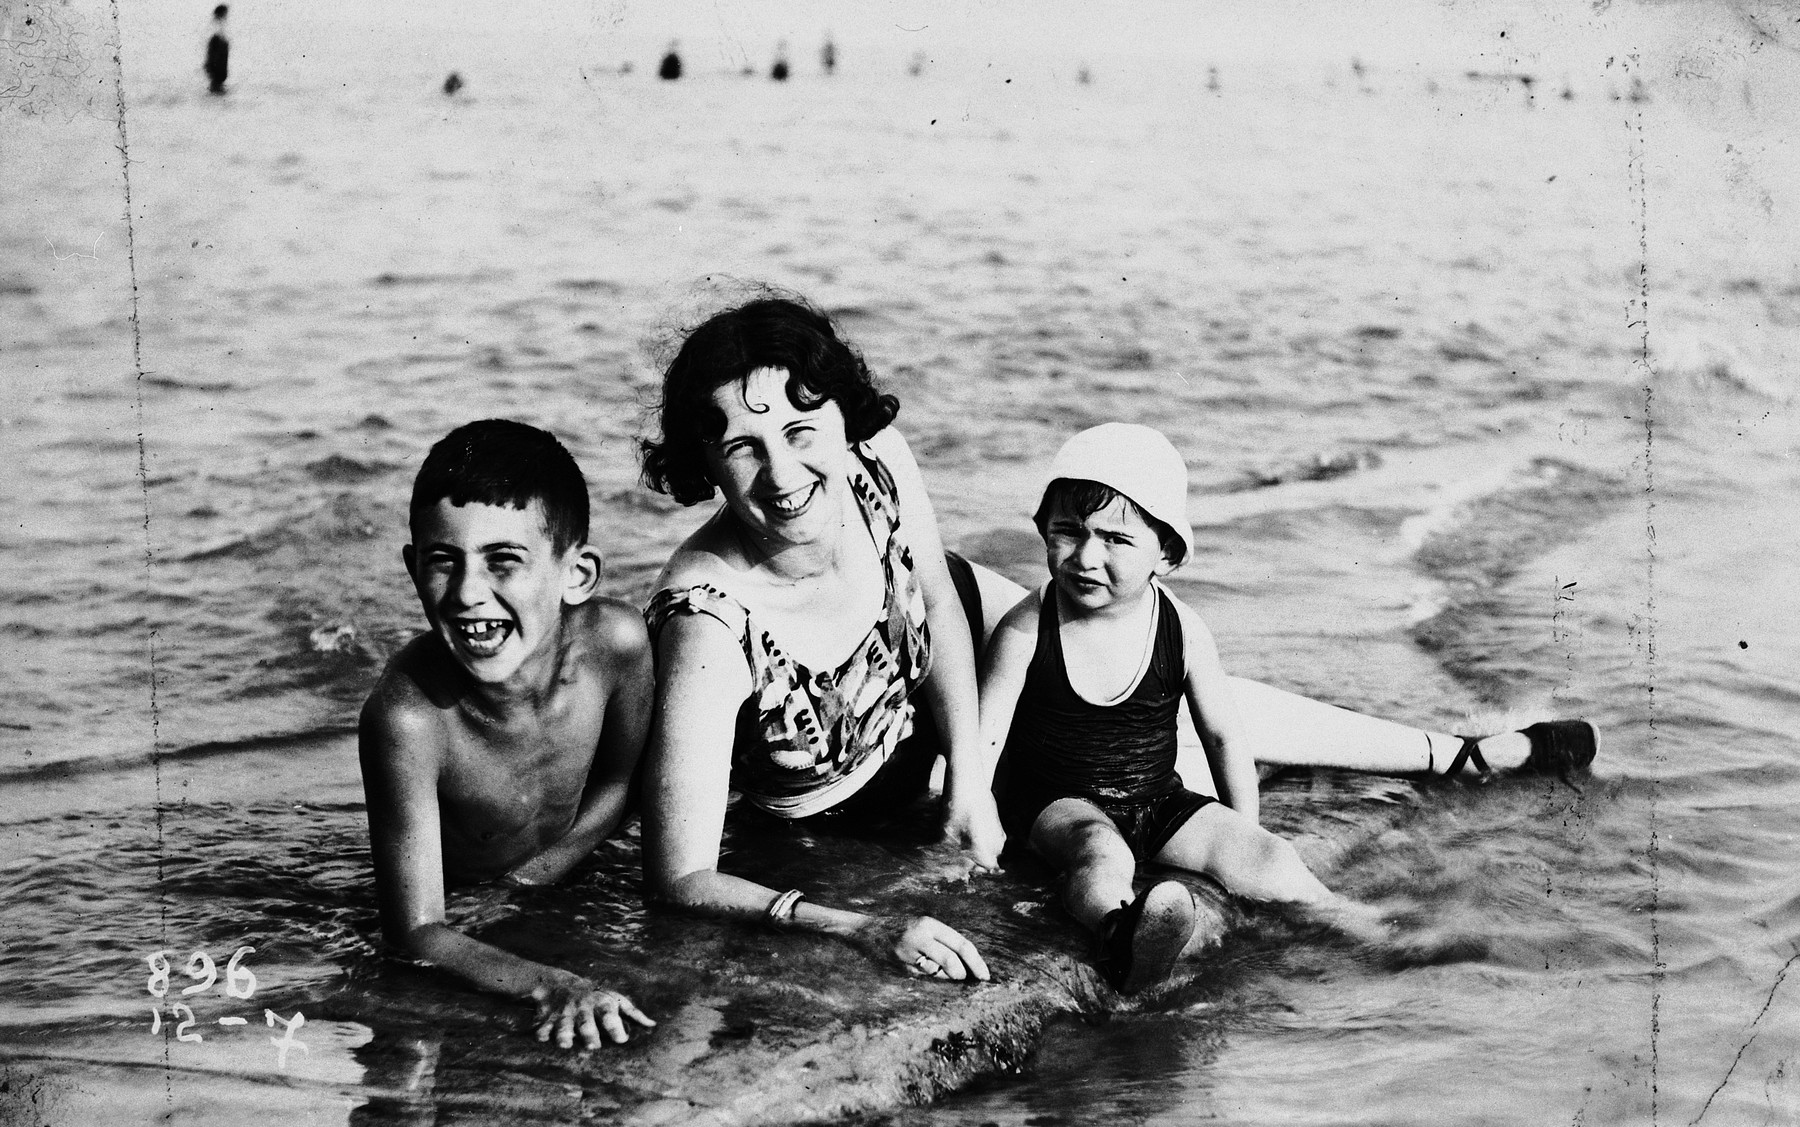 Jenny Porges poses with her two sons, Kurt and Paul Peter, at the beach.